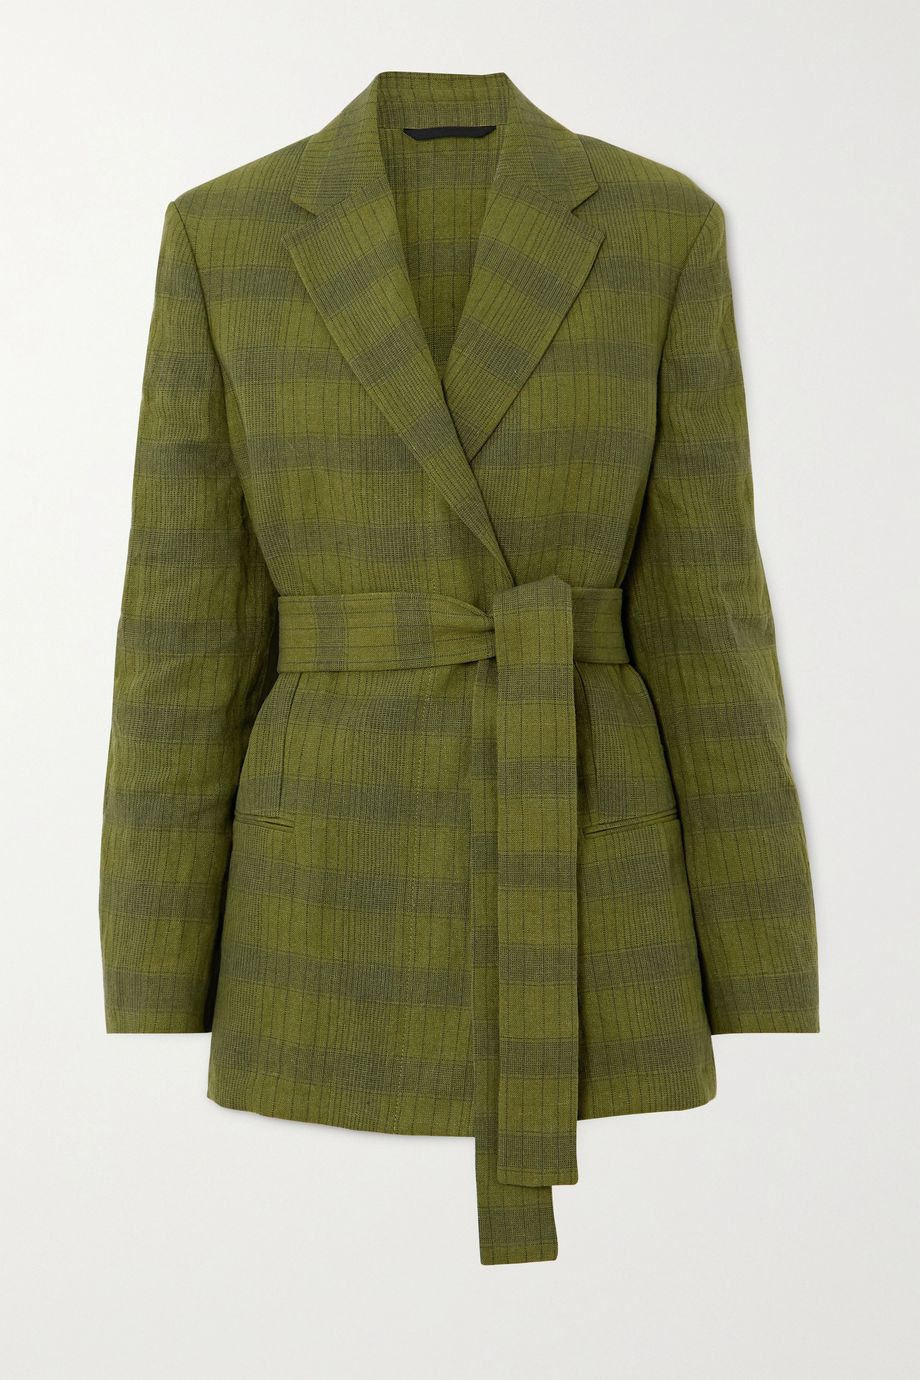 Acne Studios Oversized belted double-breasted checked linen-blend blazer